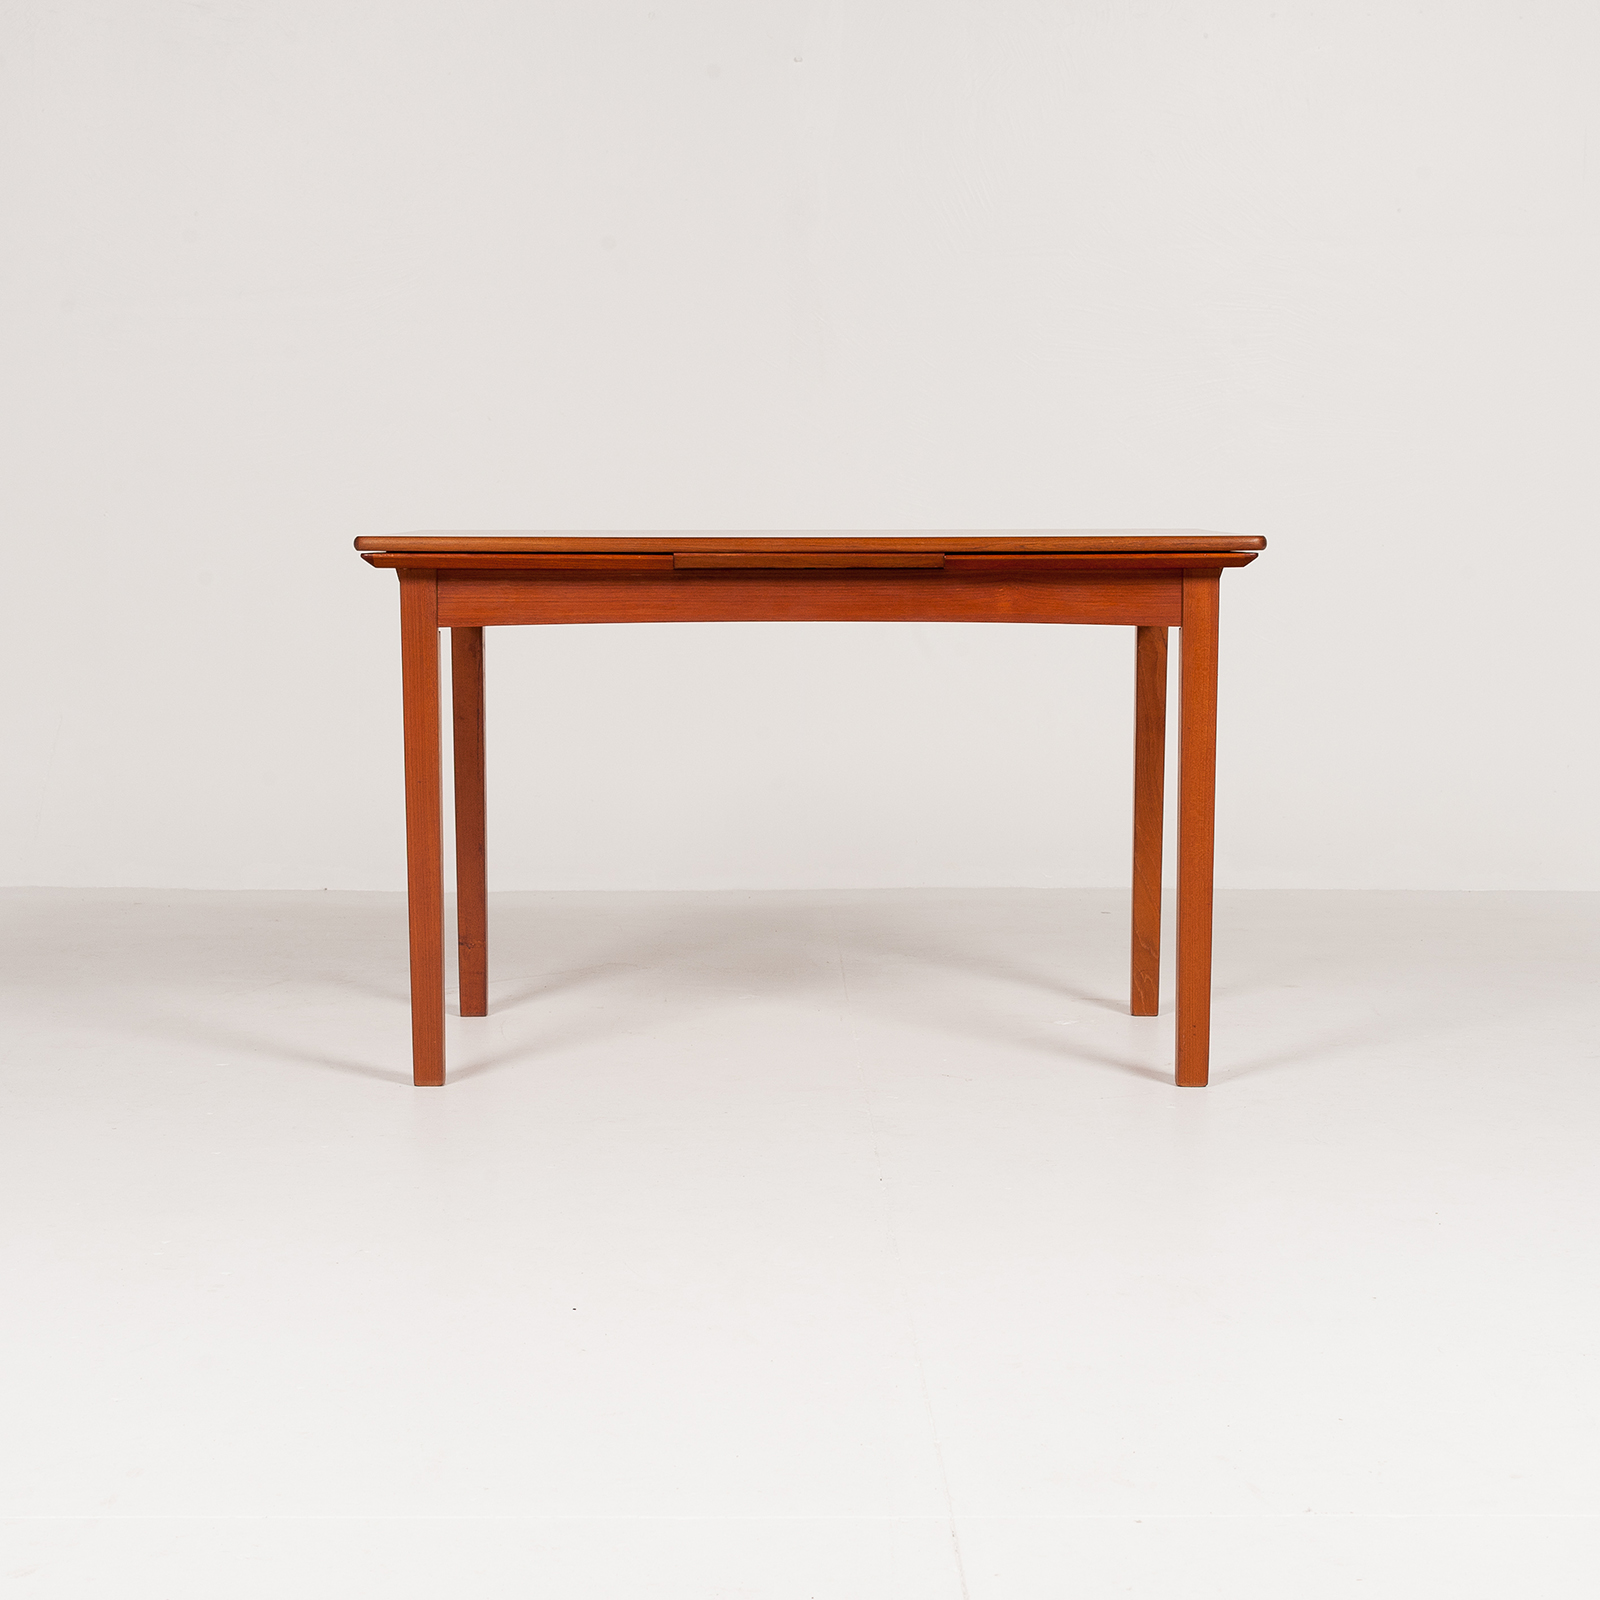 Rectangular Extension Dining Table In Teak With Square Legs, 1960s, Denmark6001